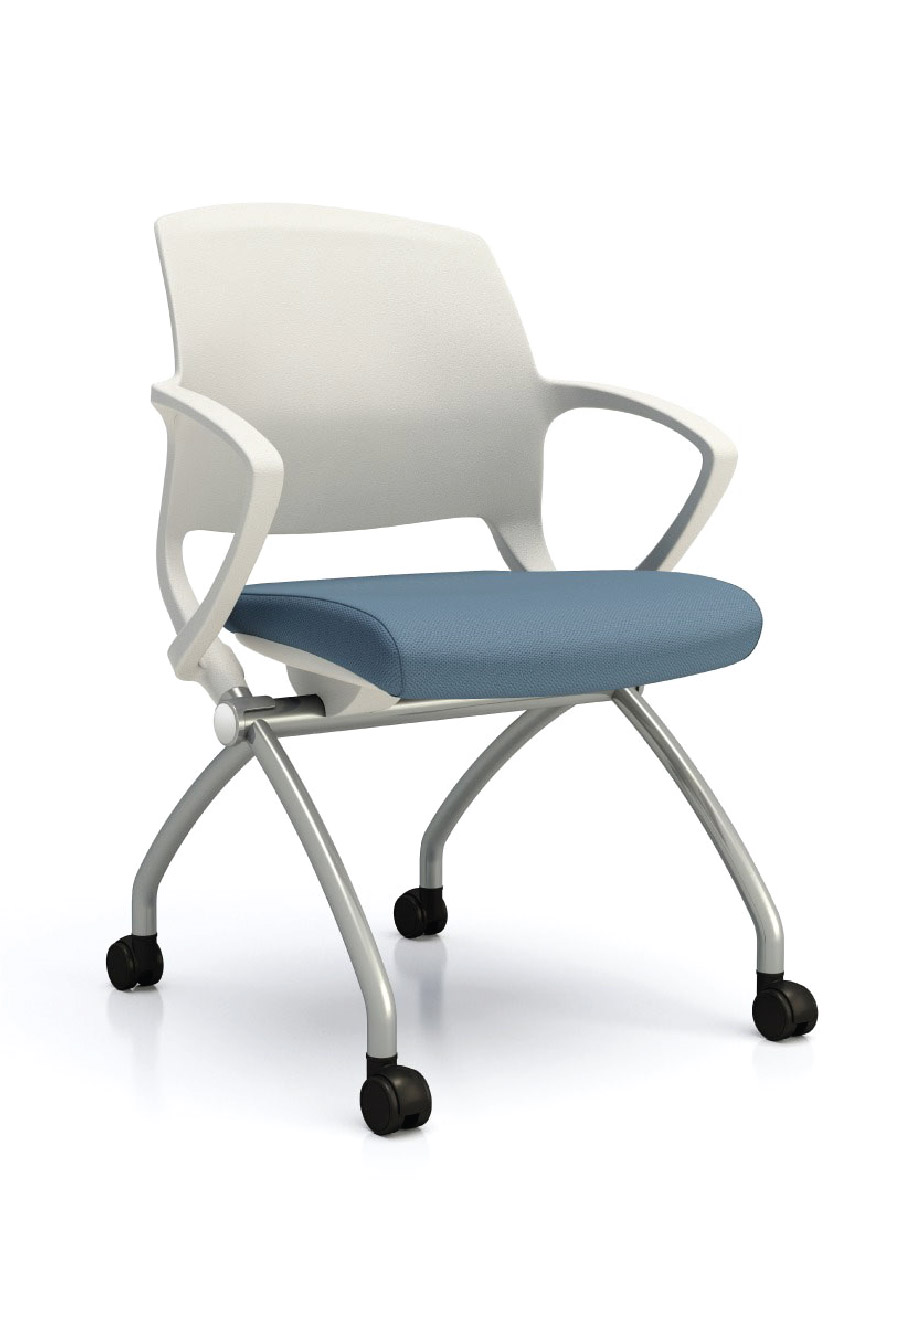 Meshchair - chair on casters